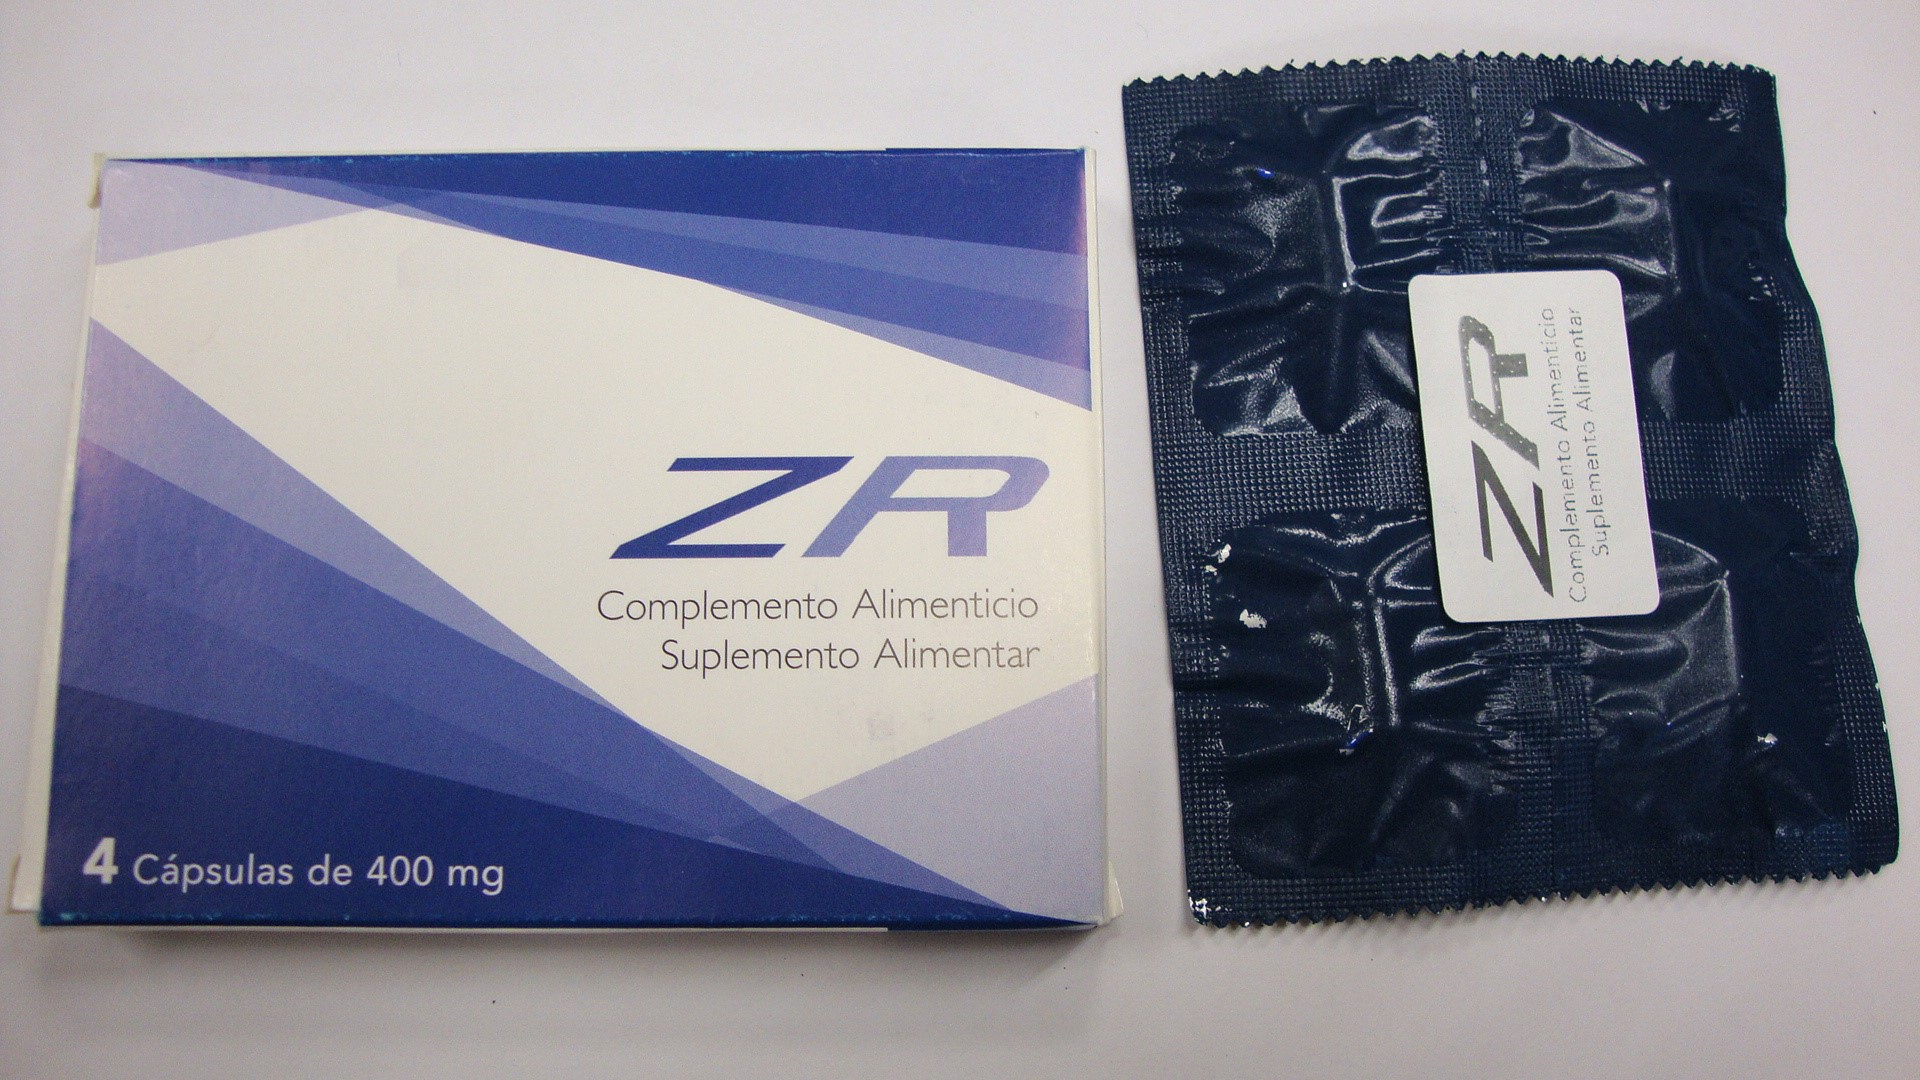 Image of the illigal product: ZR Capsules